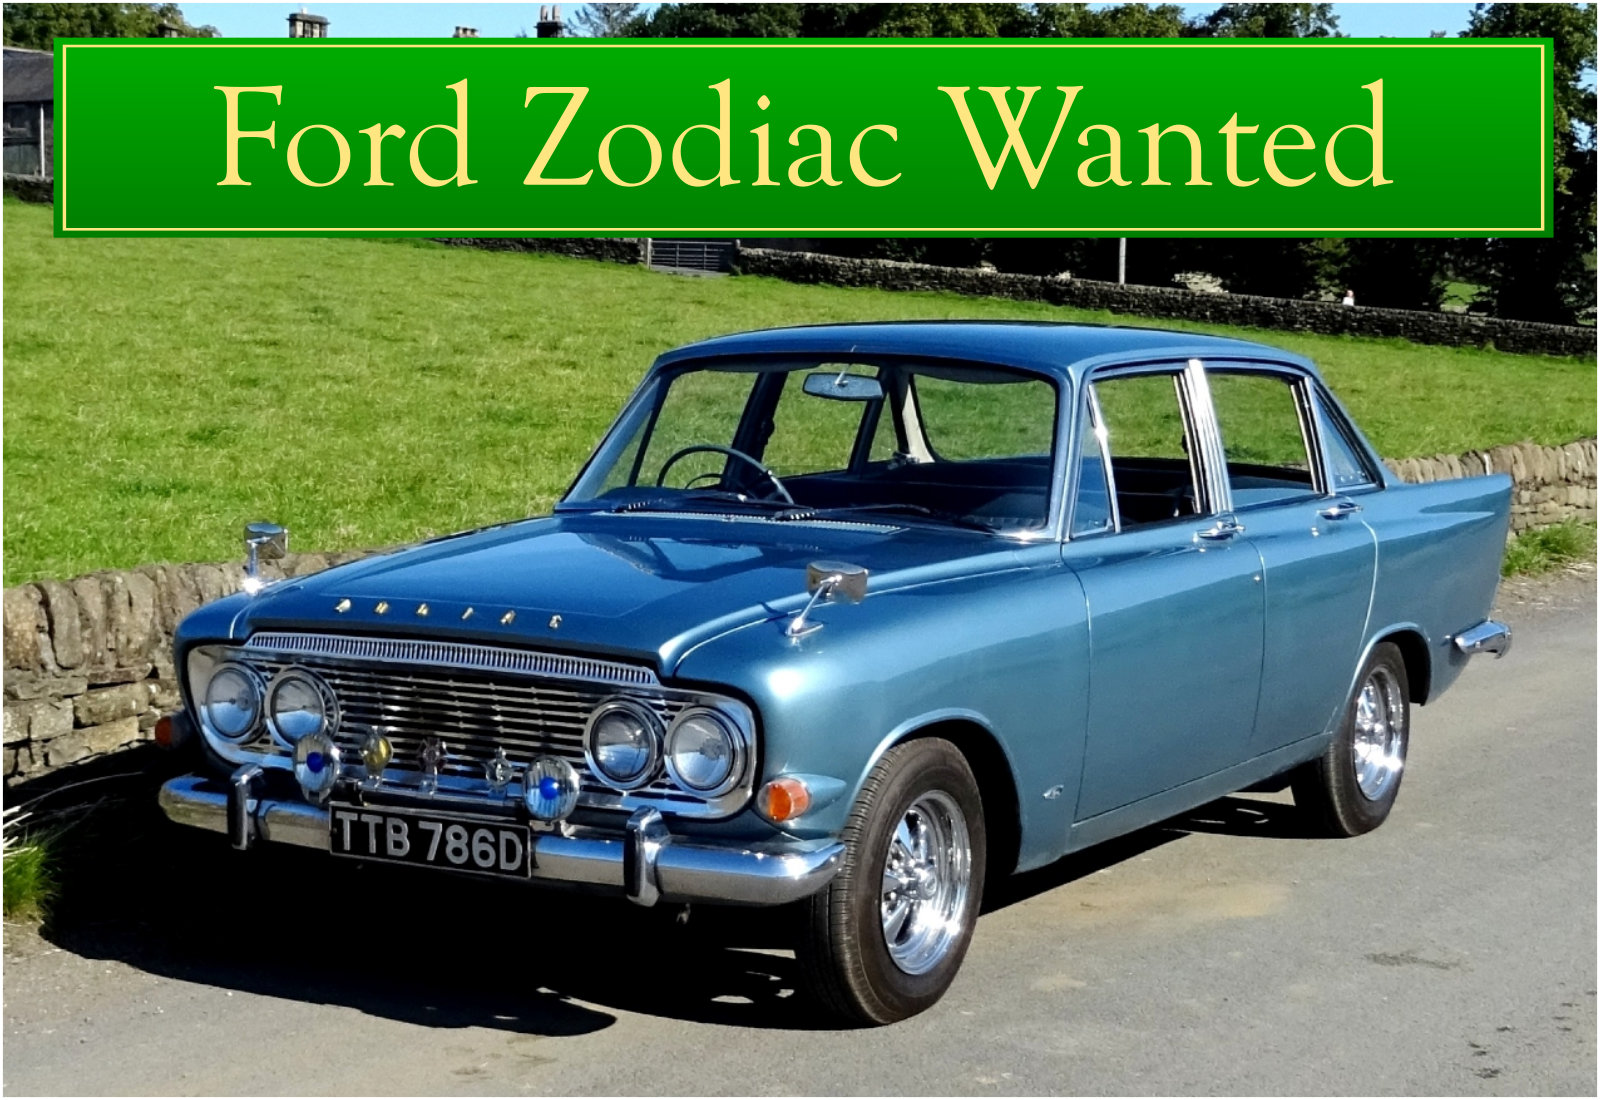 FORD ZODIAC MK1 WANTED, CLASSIC CARS WANTED, INSTANT PAYMENT Wanted (picture 3 of 6)